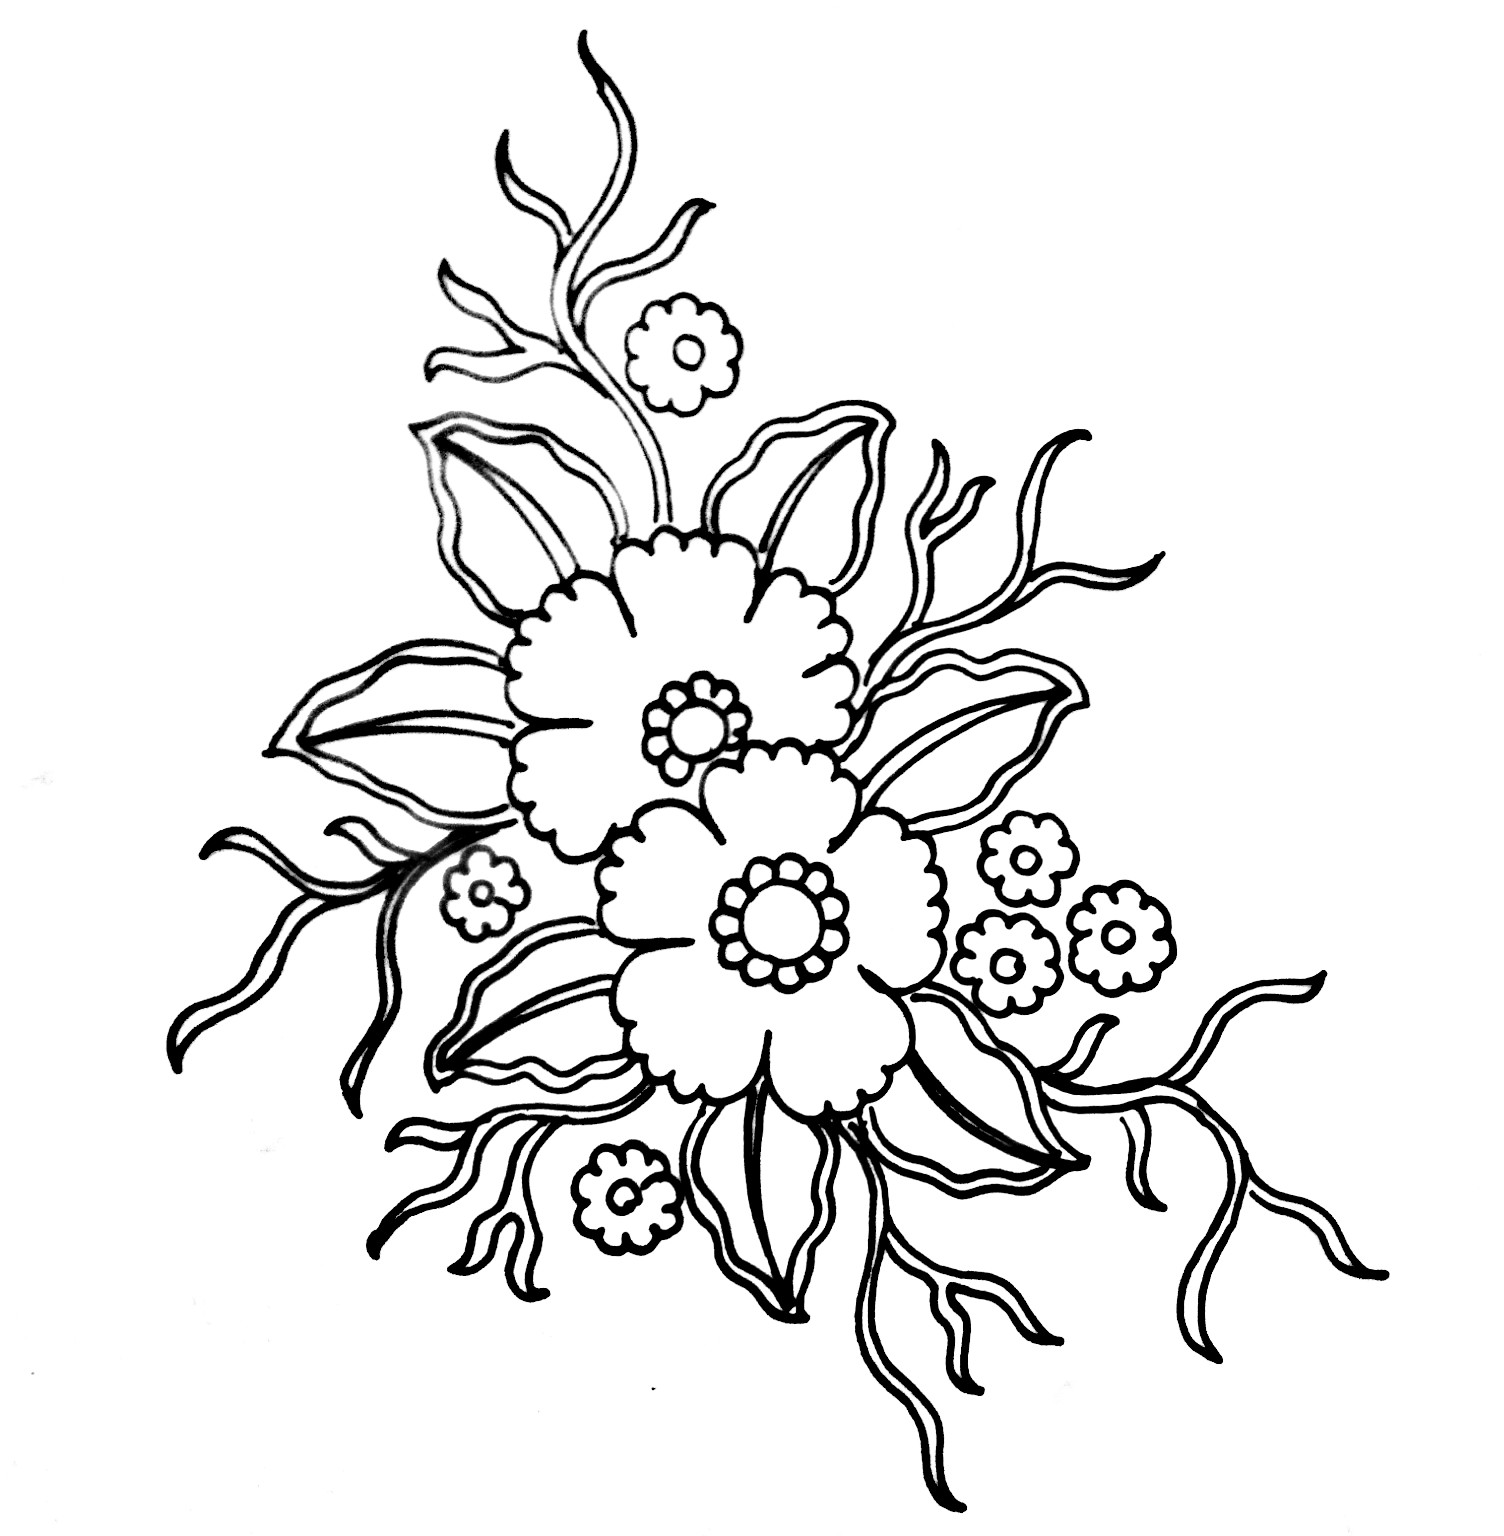 Embroidery flower design/flower embroidery design free download/free download embroidery flowers design images.